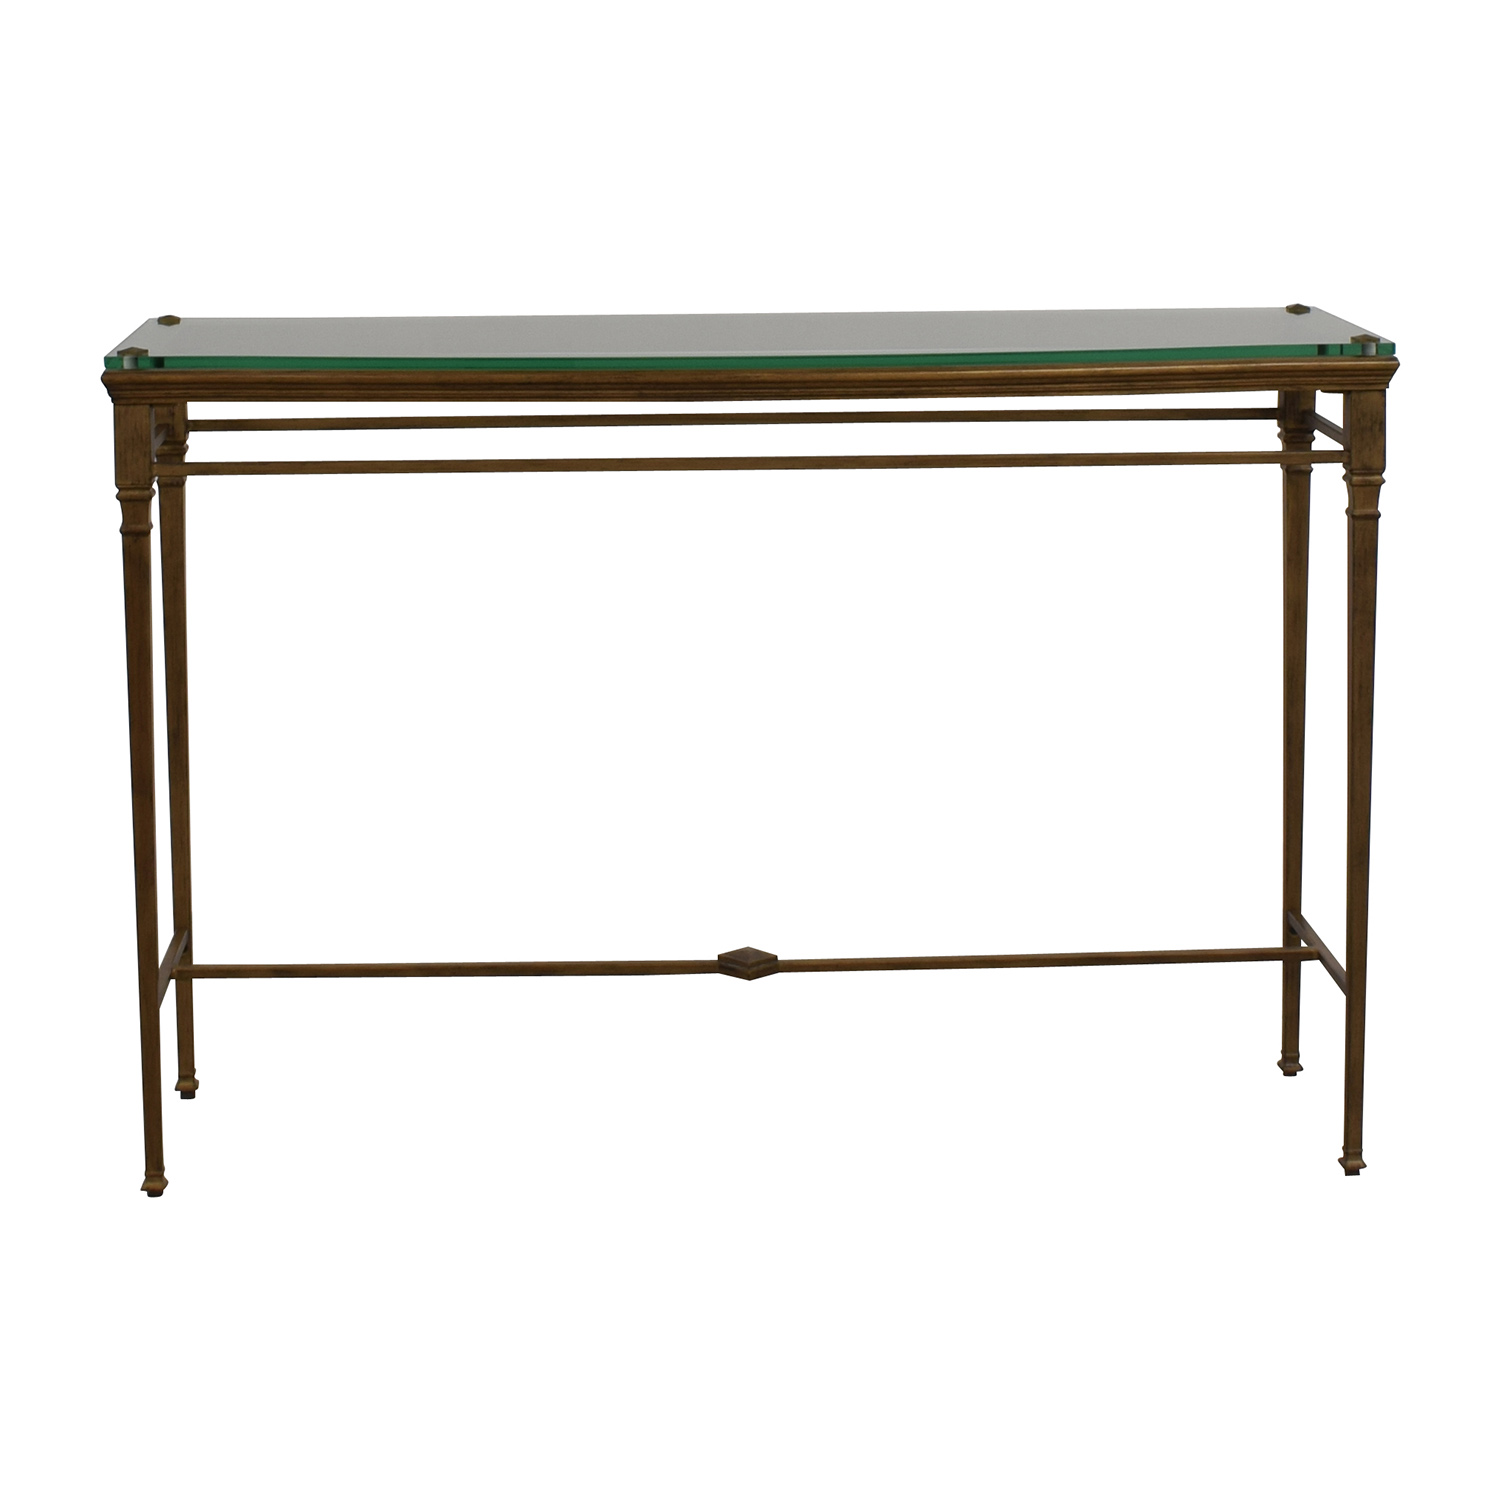 Pier 1 Pier 1 Foyer Metal And Glass Entry Table Second Hand ...